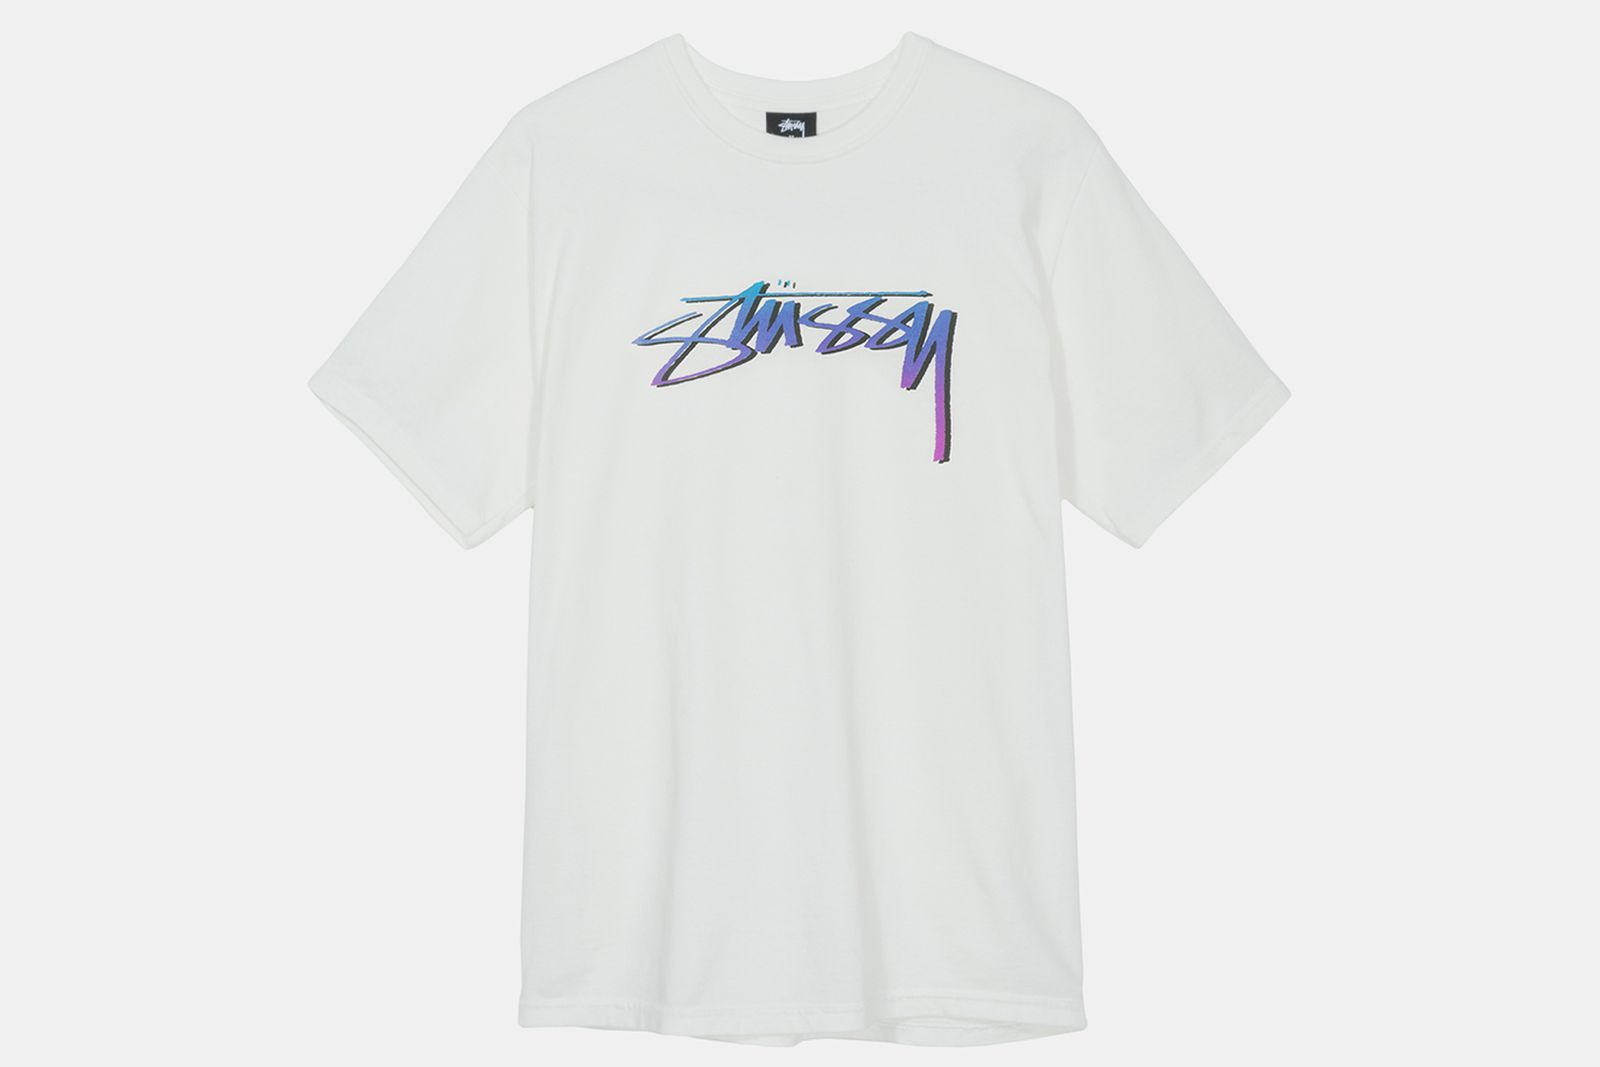 stussy spring 2019 new wave gear Stüssy